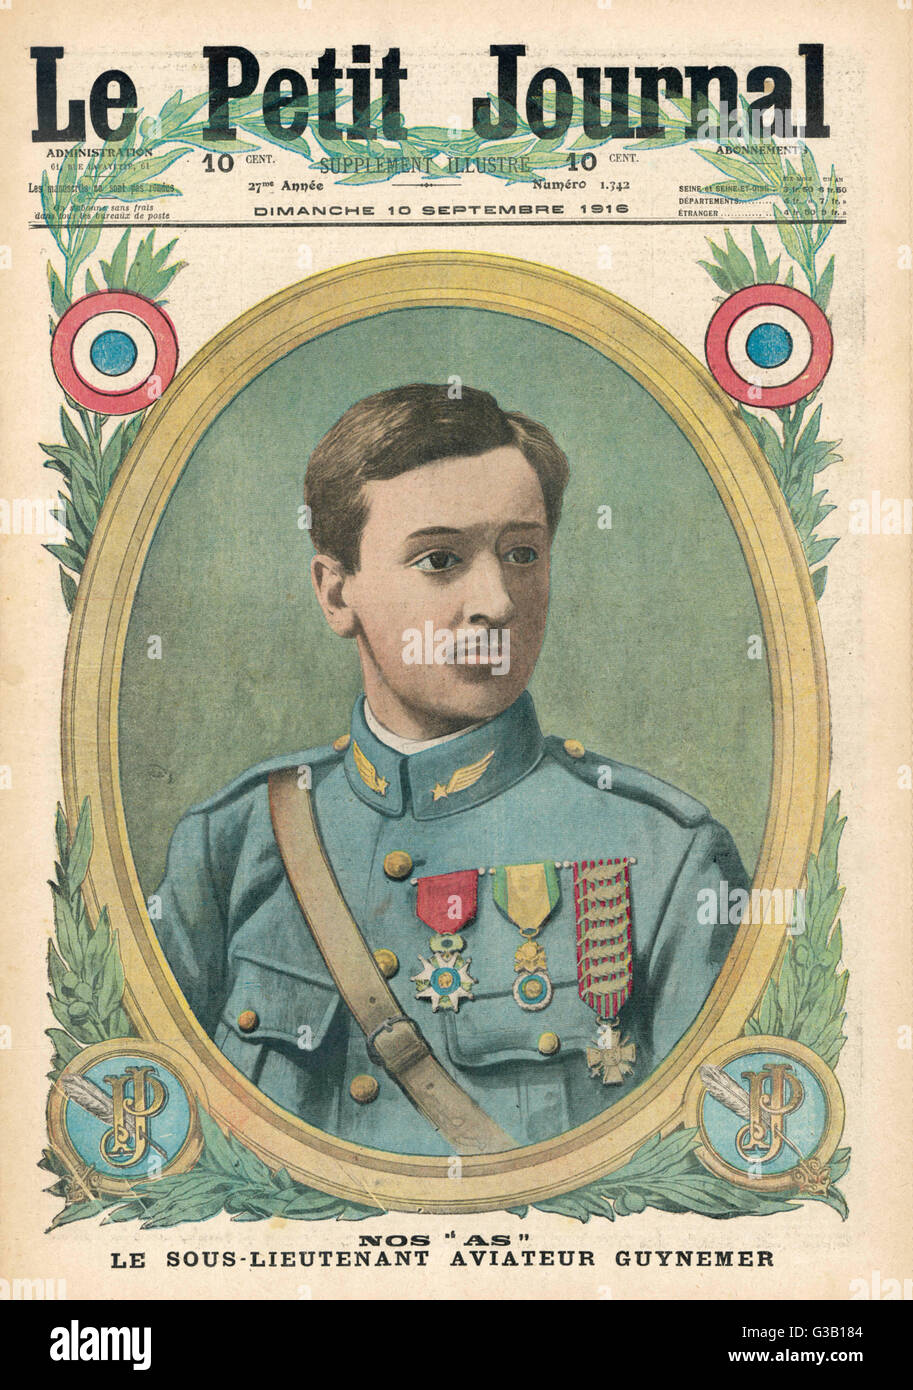 GEORGES GUYNEMER  Both popular hero and an  airman of distinction,  Guynemer won many medals in his prolific career - Stock Image